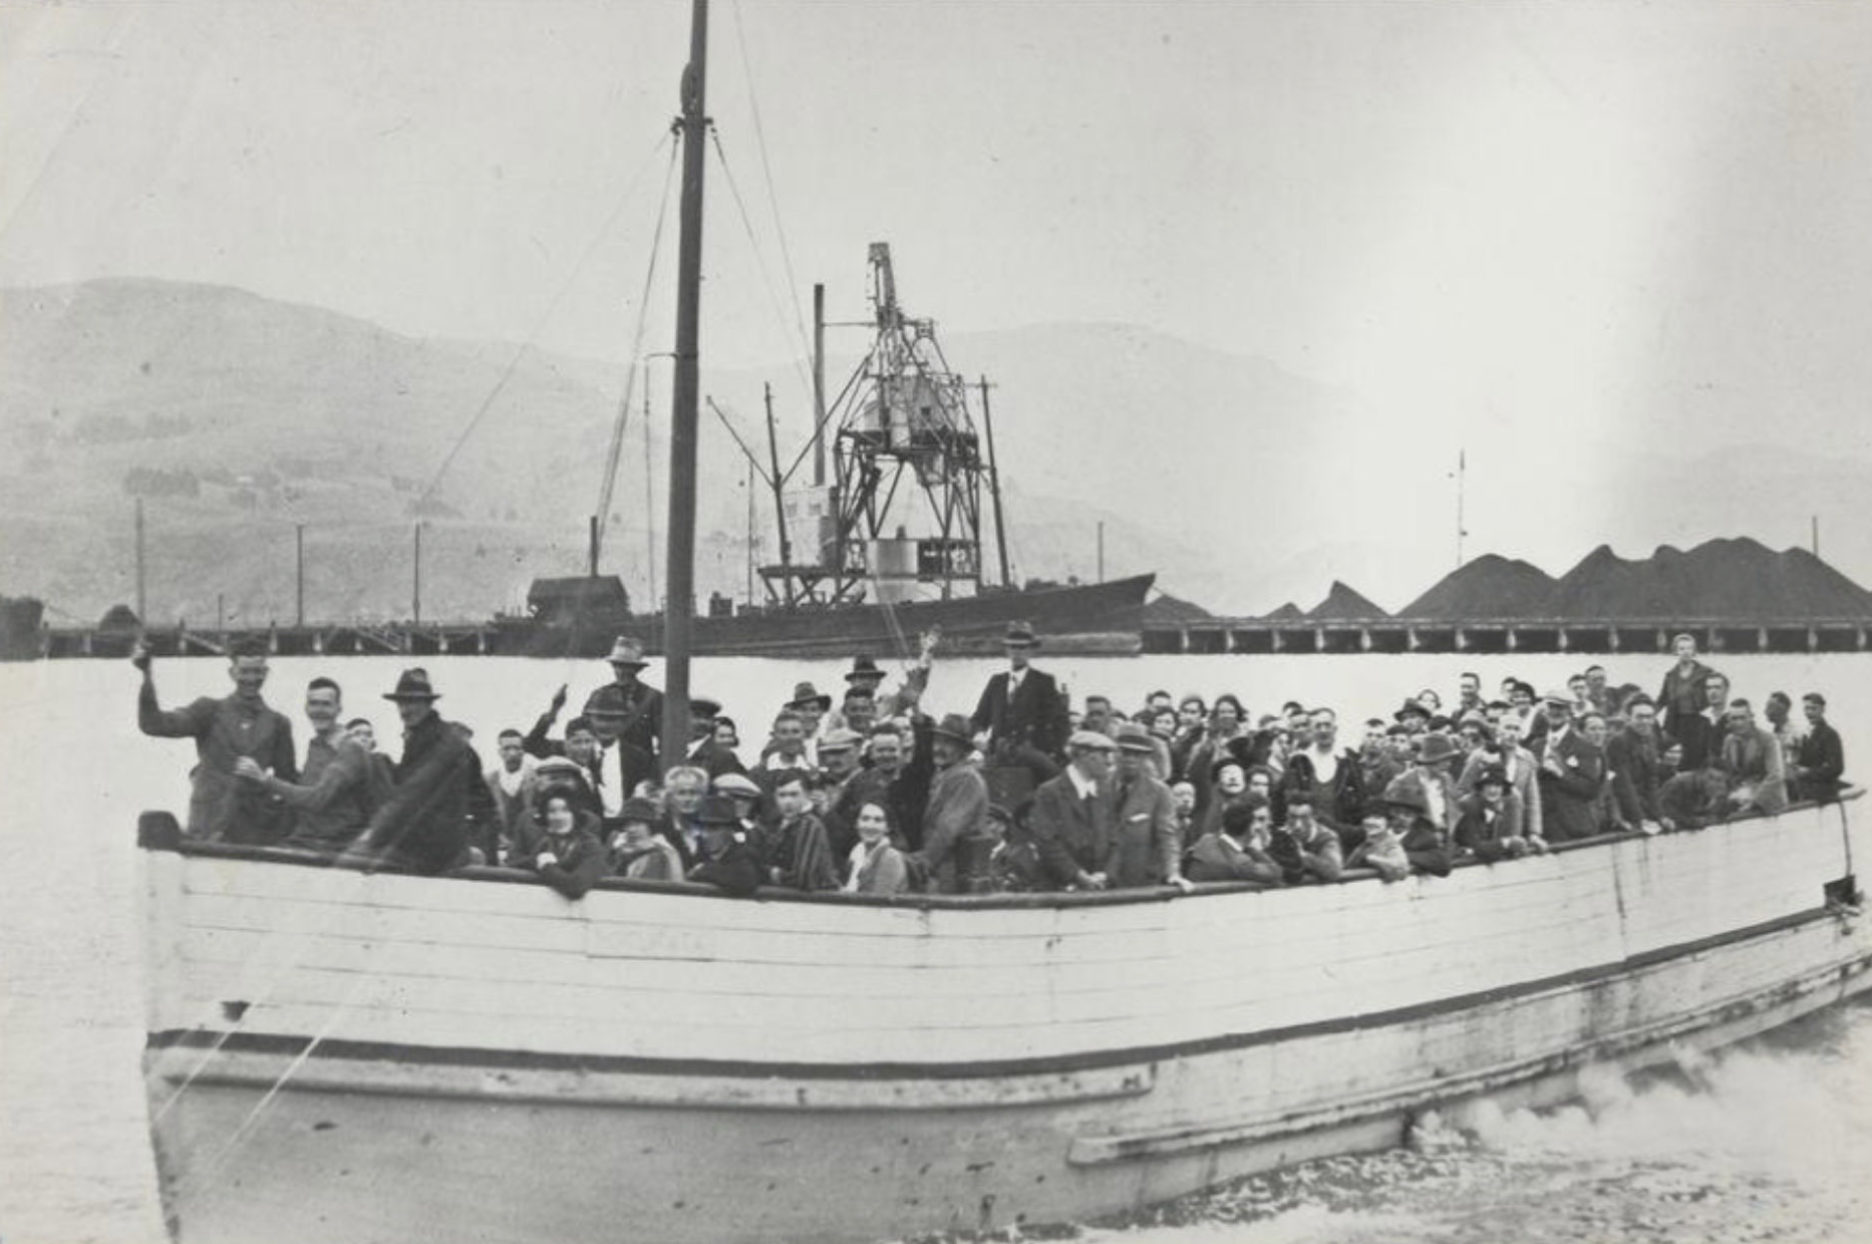 Two unidentified ships in Lyttelton Port - 14843.1